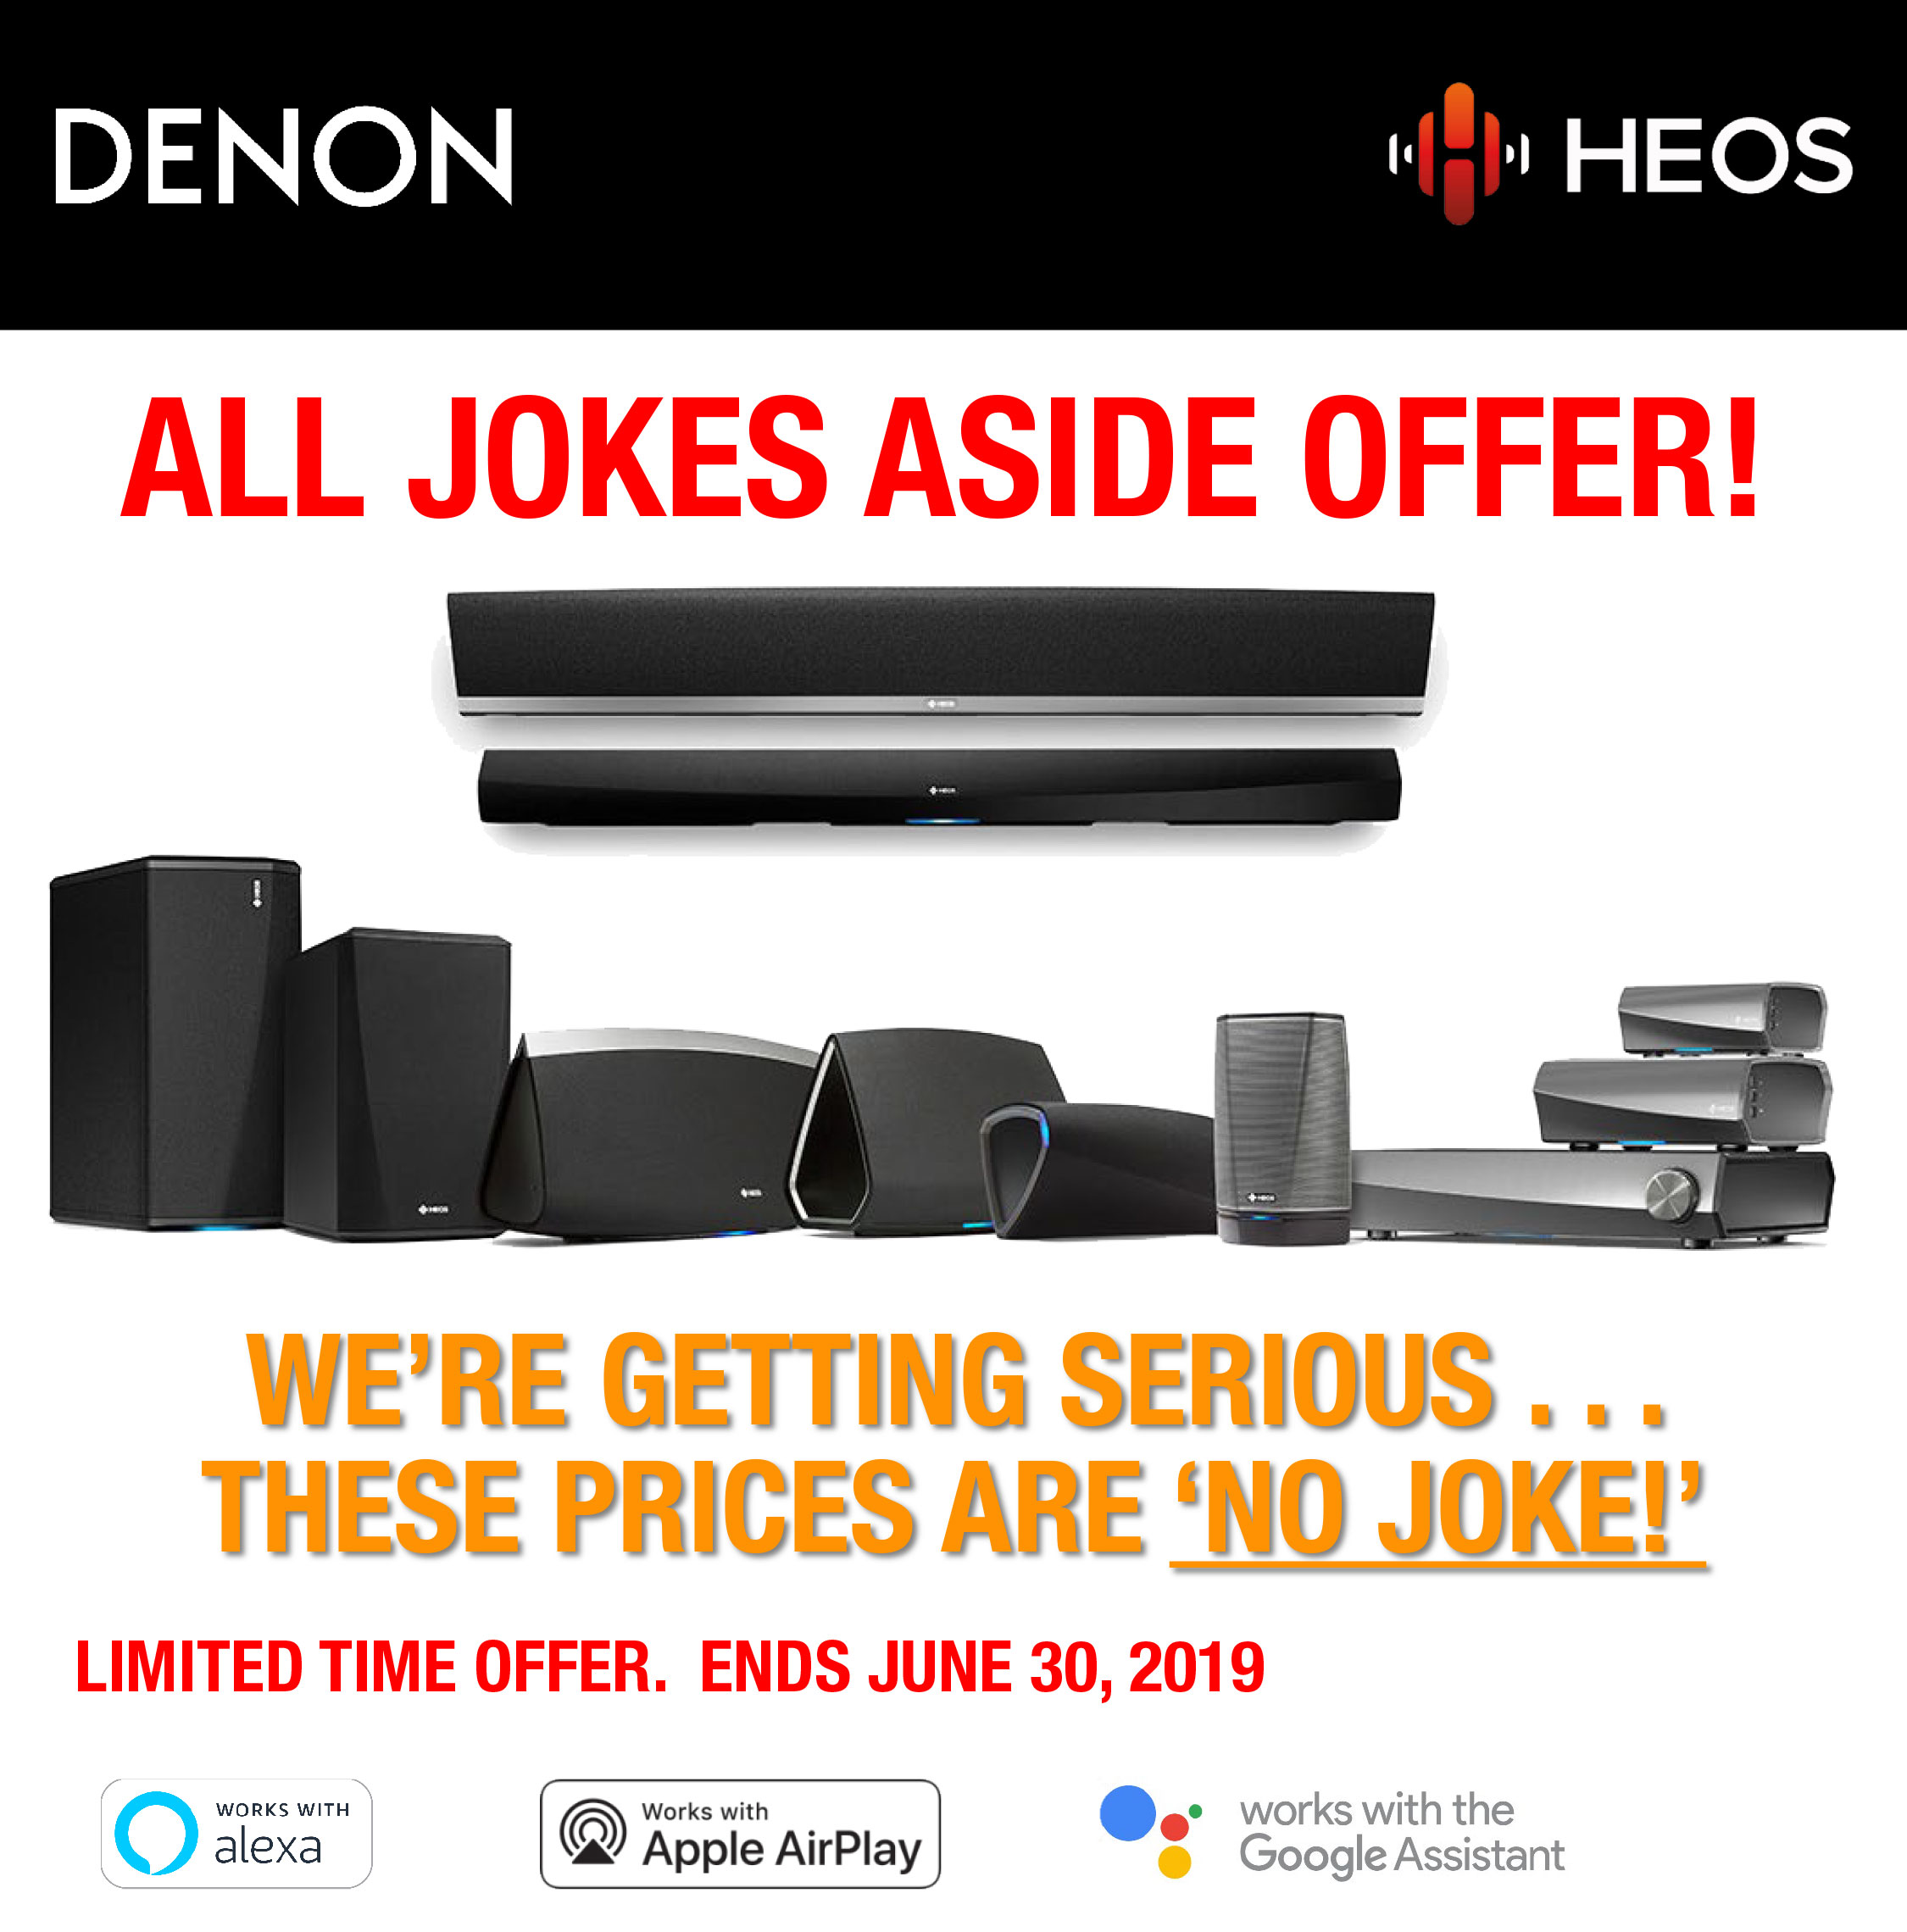 HEOS-'All-Jokes-Aside'-Speaker-&-Bar-Offer-AVSP-&-CI---March-2019